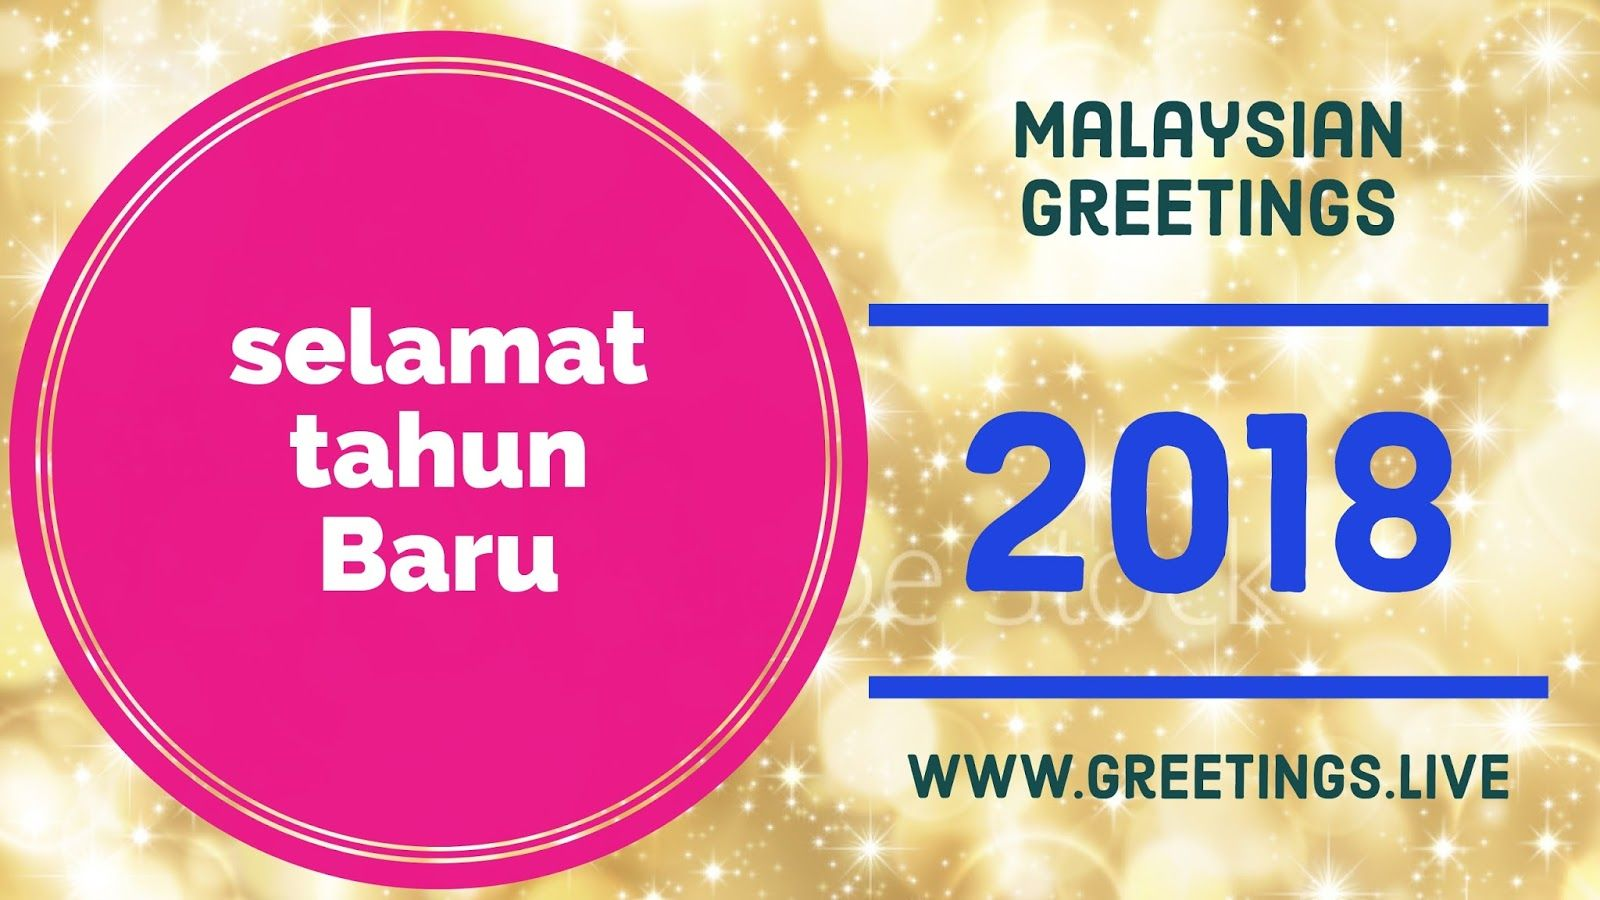 Malaysian Greetings Happy New Year 2018 Greetings Live Pinterest